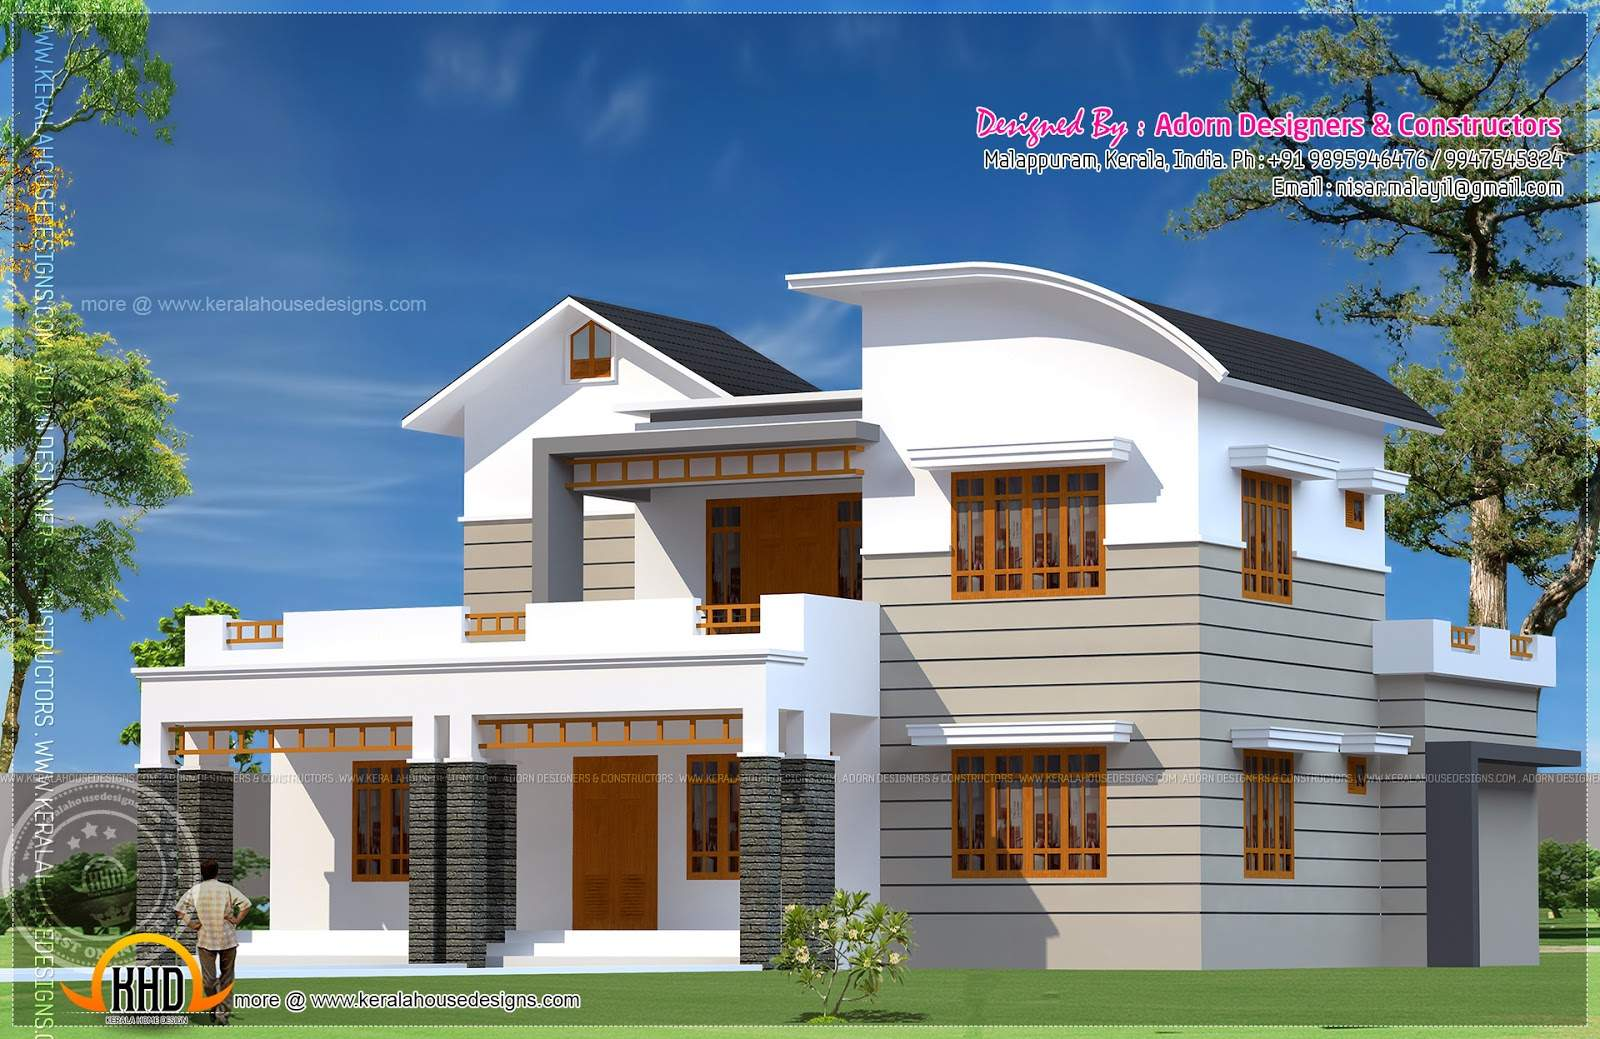 Bedroom House Exterior Indian Plans